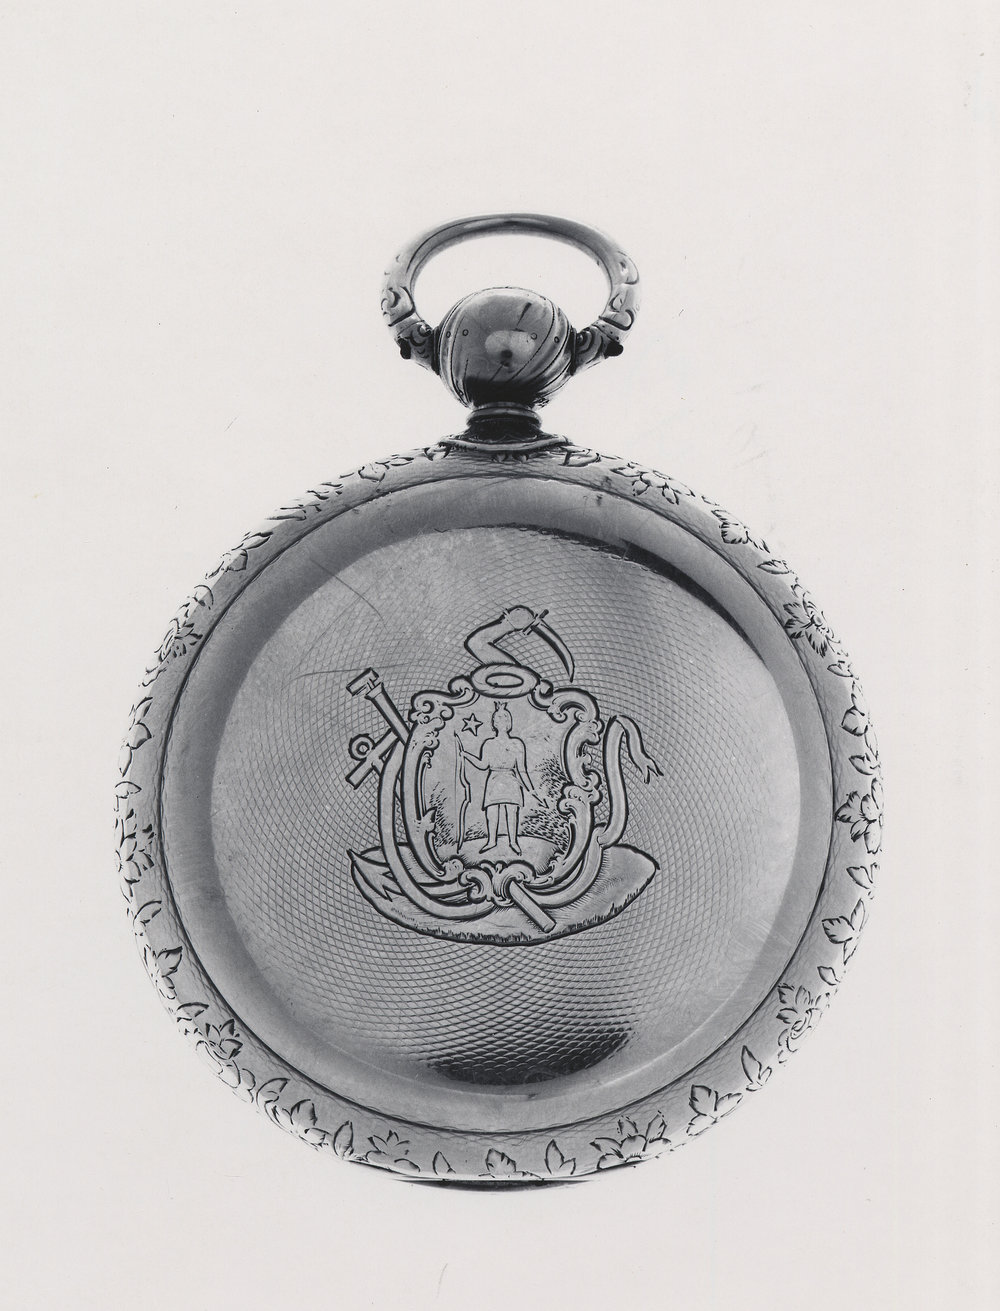 American Watch Company Prototype case from 1852.jpg